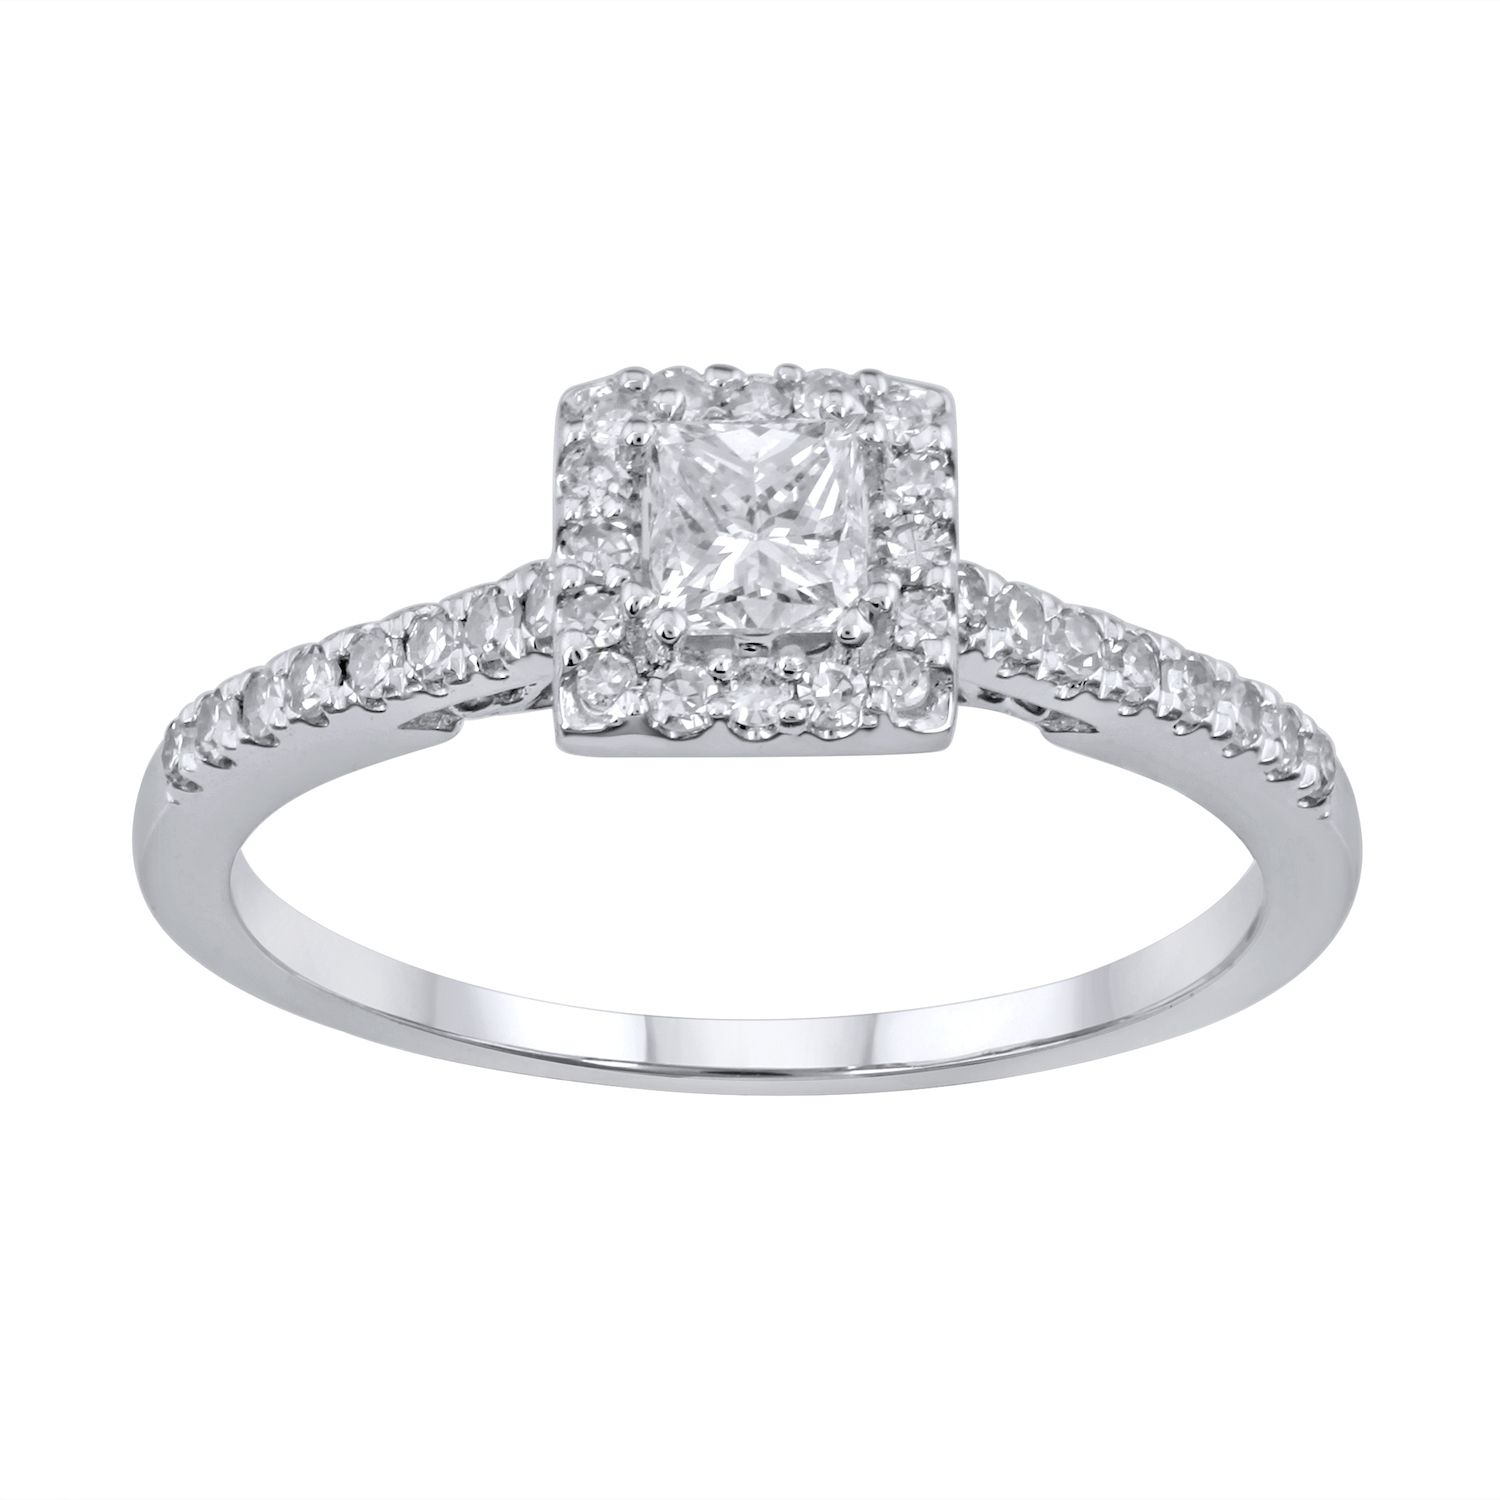 simply vera vera wang diamond halo engagement ring in 14k white gold 12 ct tw vera wang wedding bands Simply Vera Vera Wang Diamond Halo Engagement Ring in 14k White Gold 1 2 ct T W